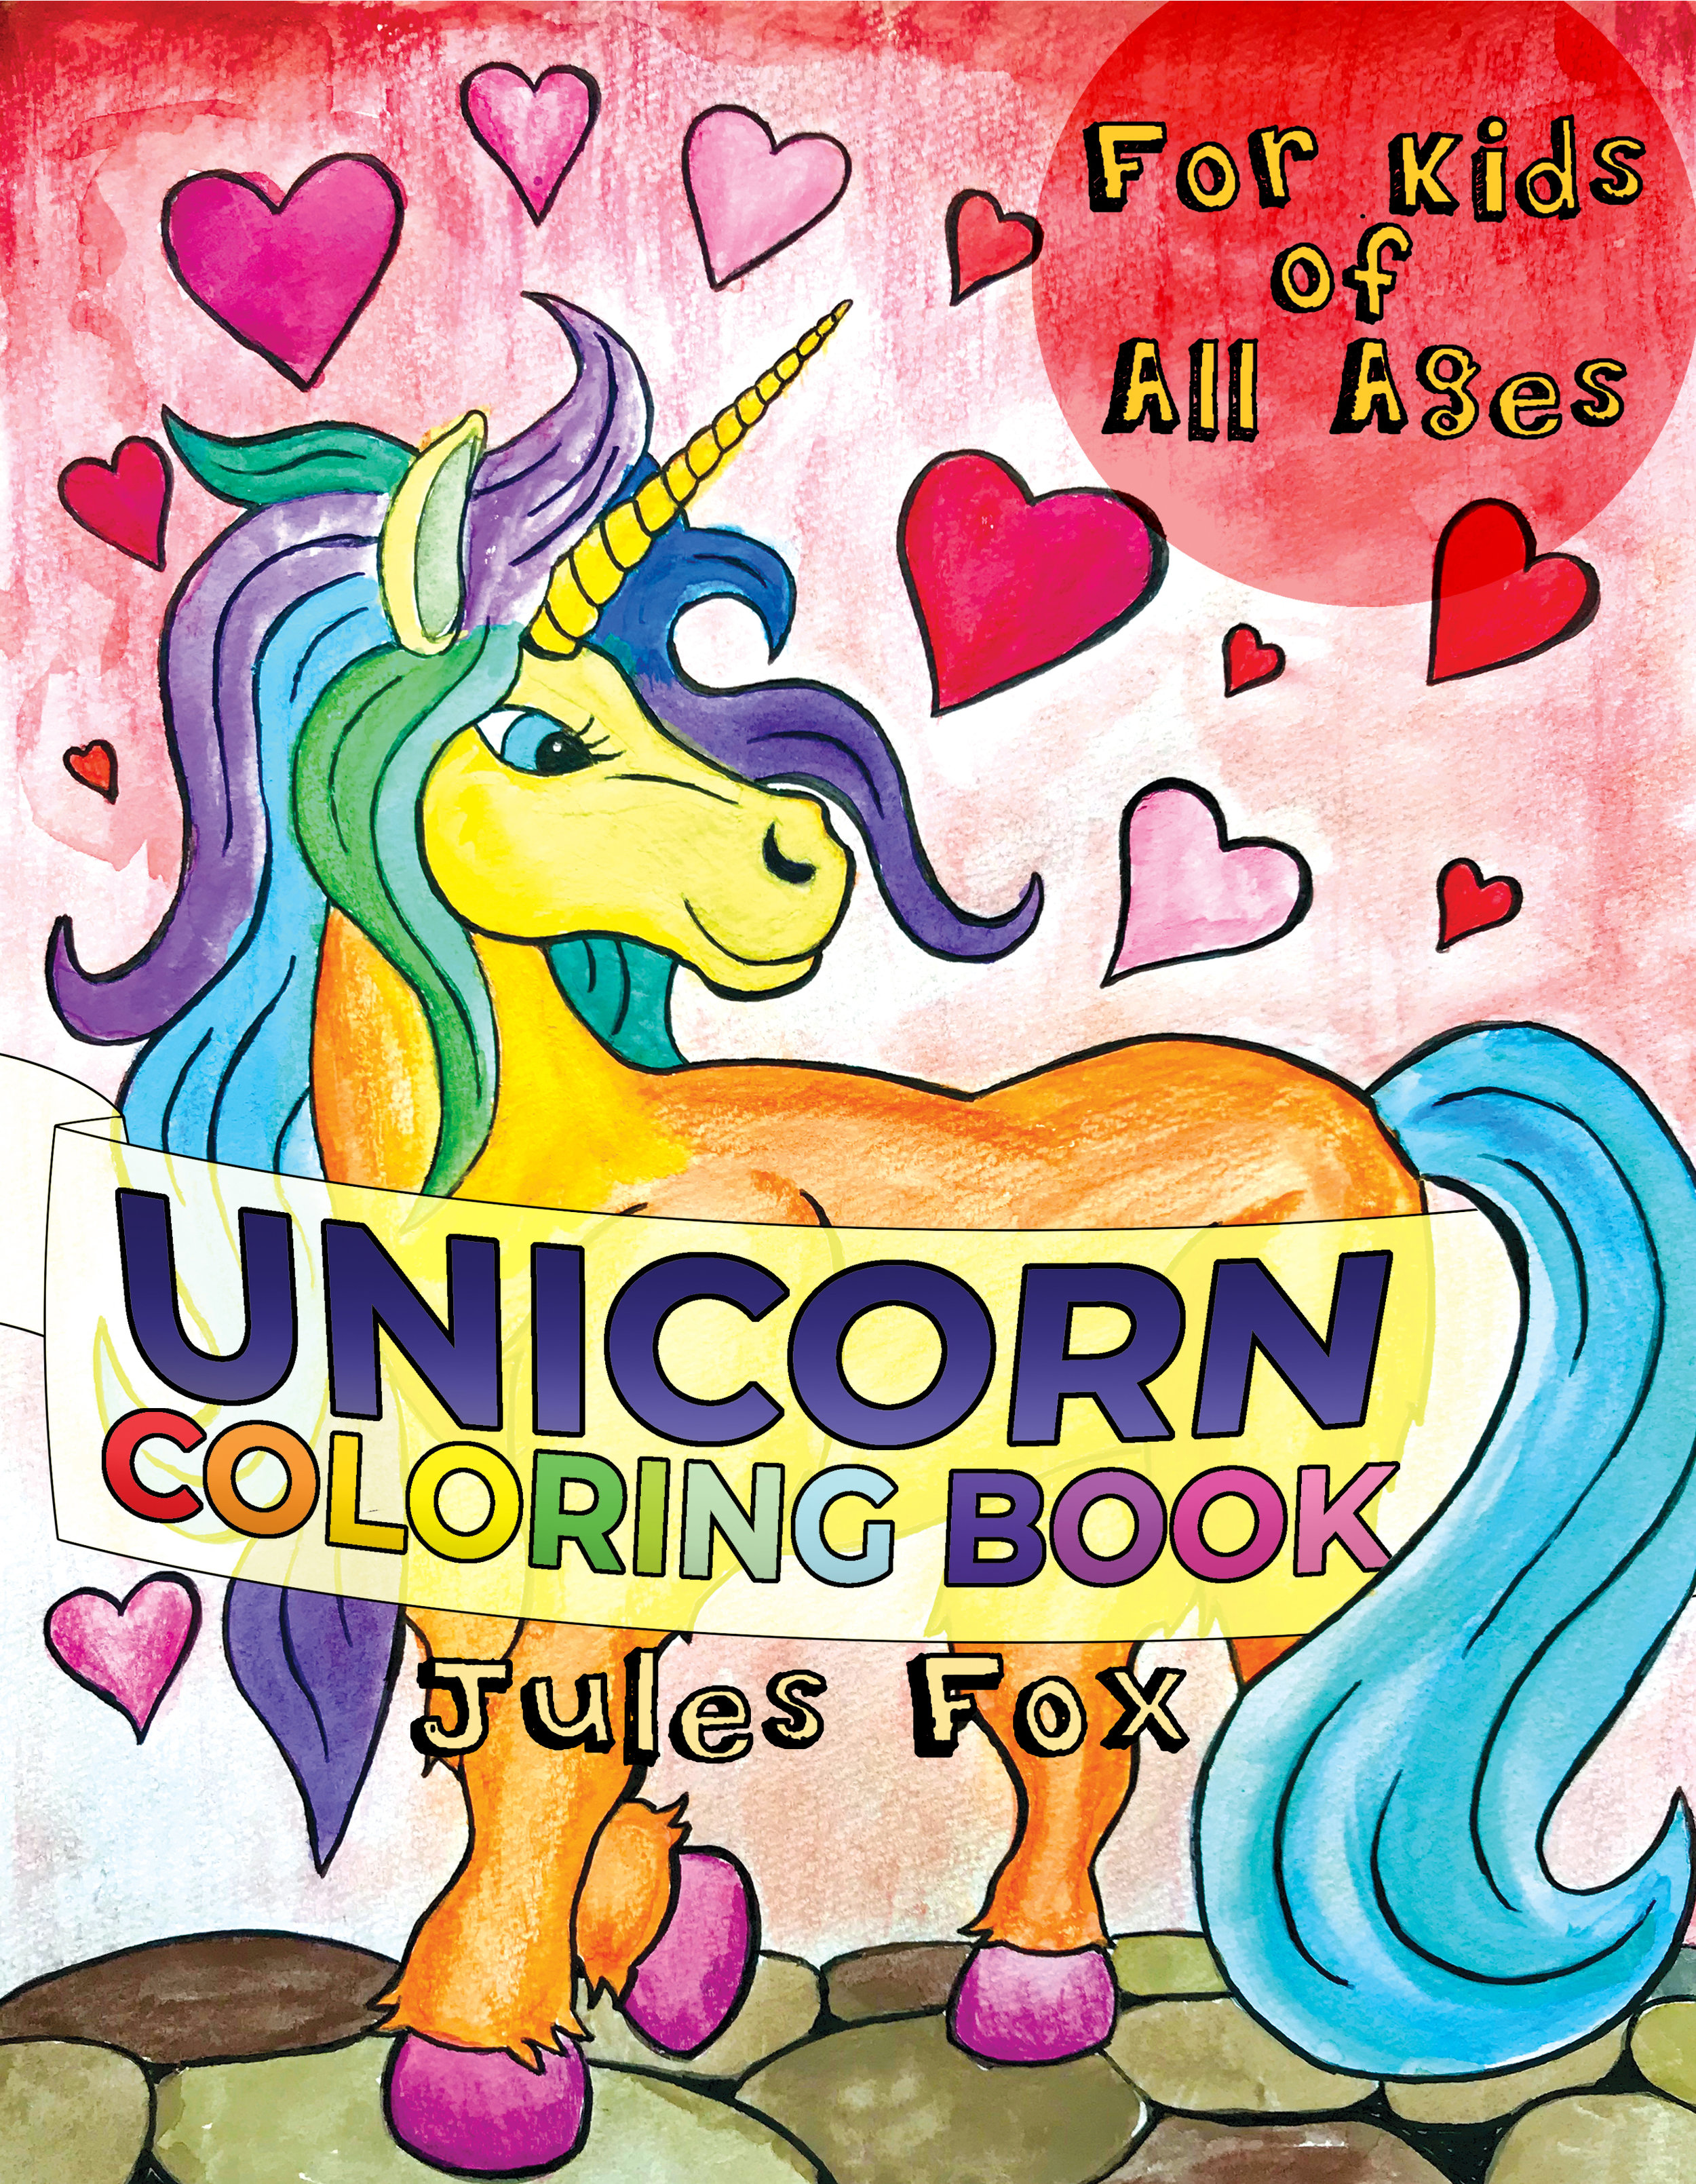 The Unicorn Coloring Book for Kids of All Ages   29 Hand-Drawn full page fantasy Unicorn illustration, including 25 by Jules Fox and 4 by guest artists. Perfect for Unicorn lovers of all ages, starting from when they can draw, color, or paint!